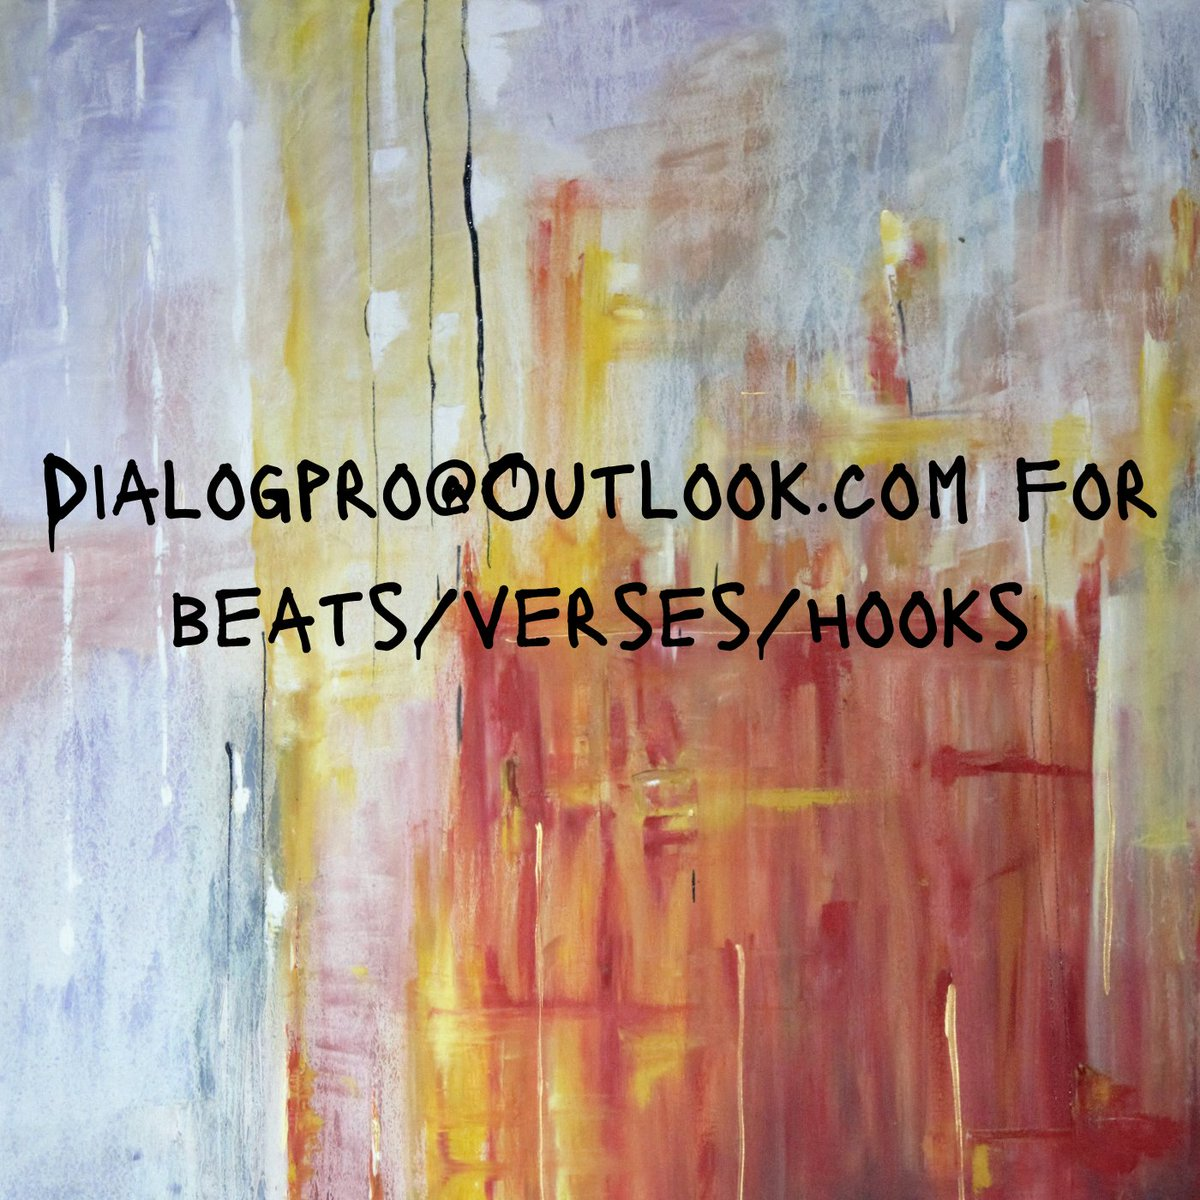 #Beats #Rhymes #BeatsForSale #HipHop #BoomBap #Jazzy #Soulful #Lofi #Hifi #collaboration #Art #ArtForSale #Instrumentals #Verses #Rap #NewMusic https://t.co/ZJo66z4fAC